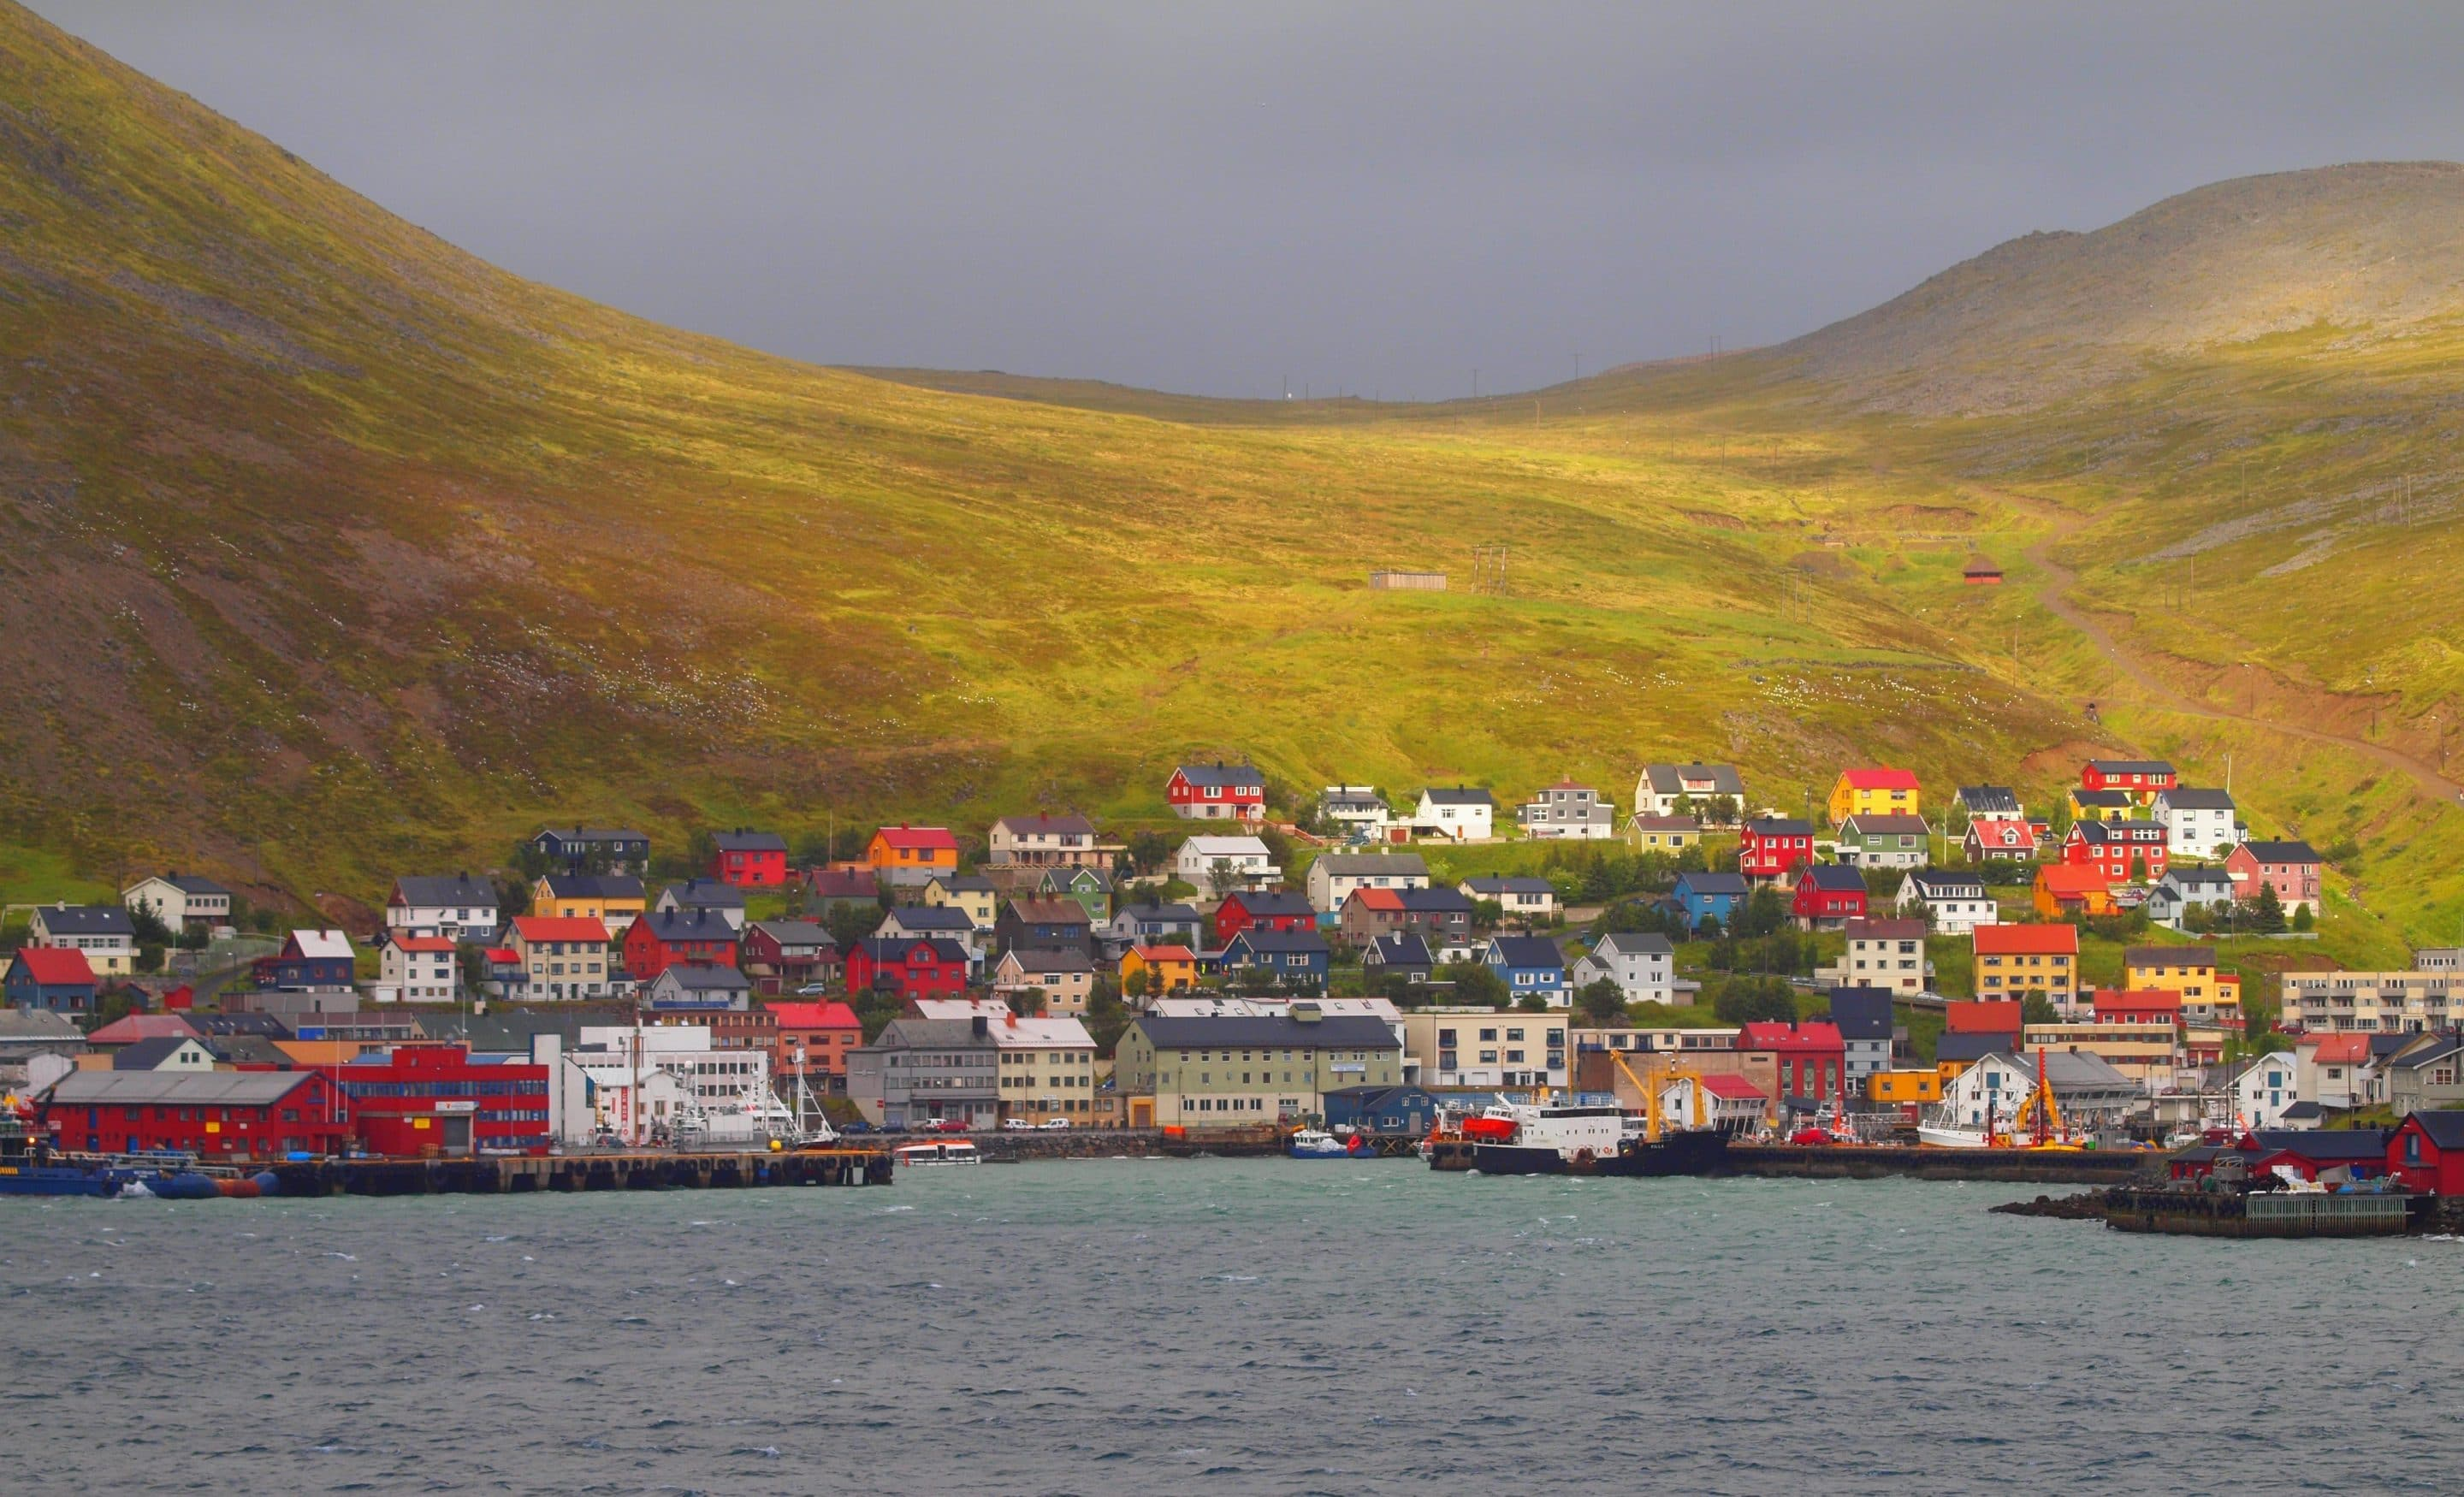 Honningsvåg, Finnmark, Norway. | Photo: Luca Boldrini - wikimedia.org cc by.